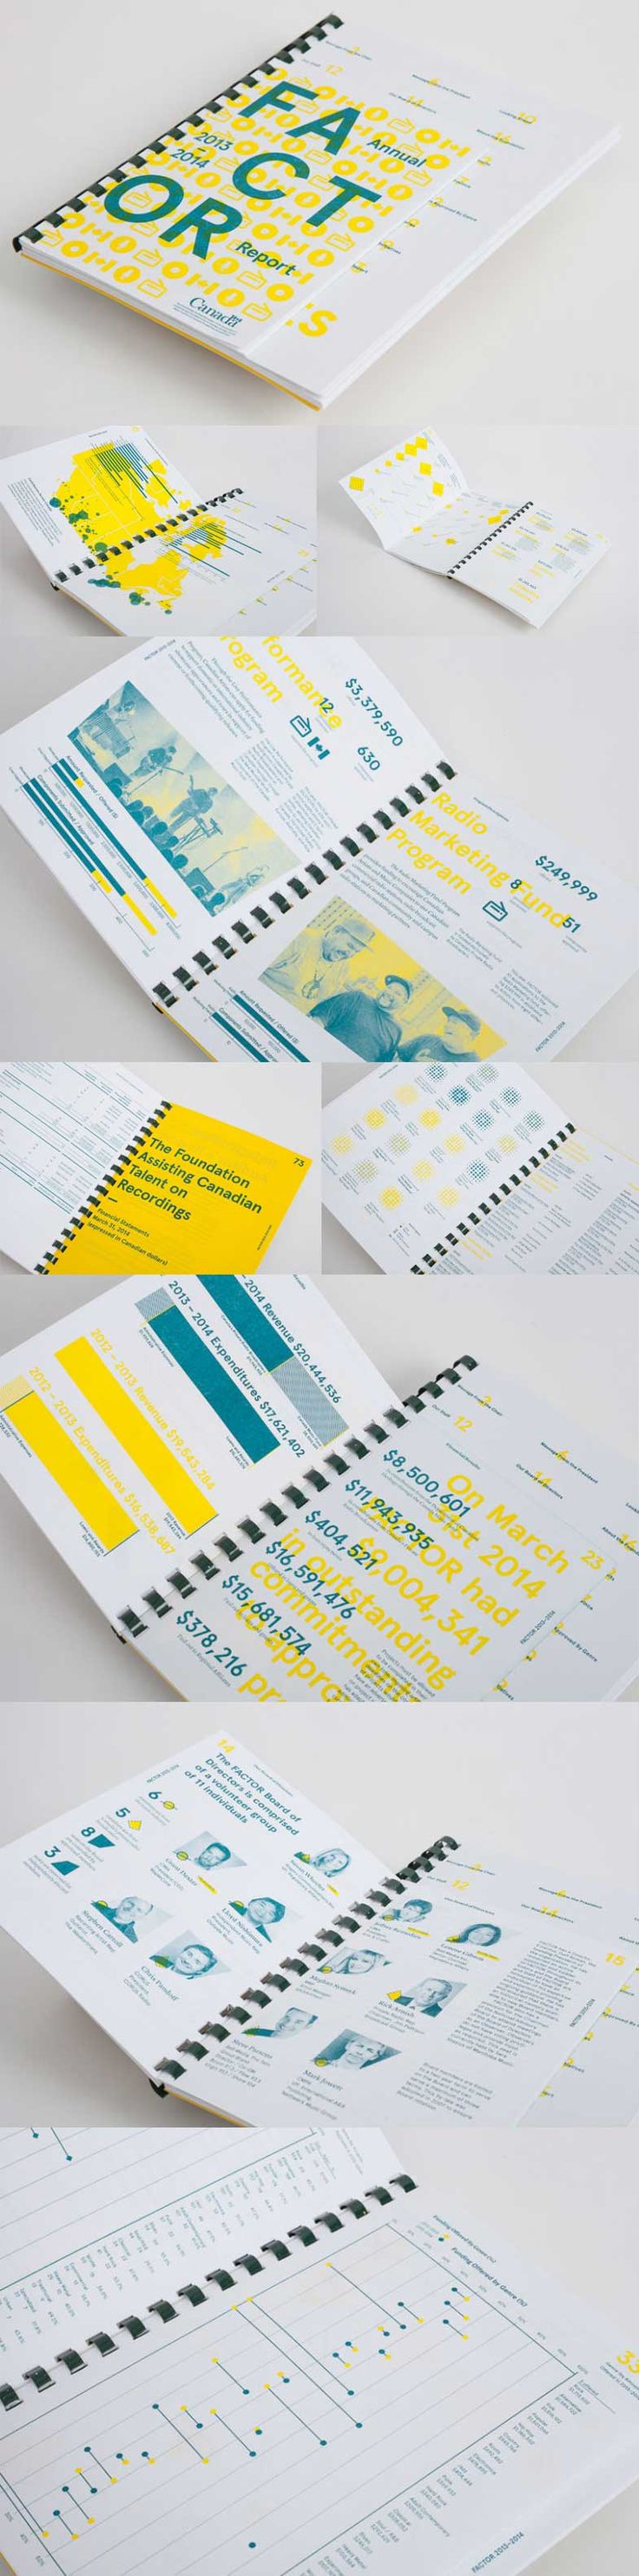 Designing an annual report has become a challenging job. Here are 10 annual report examples featuring colorful designs for inspiration.